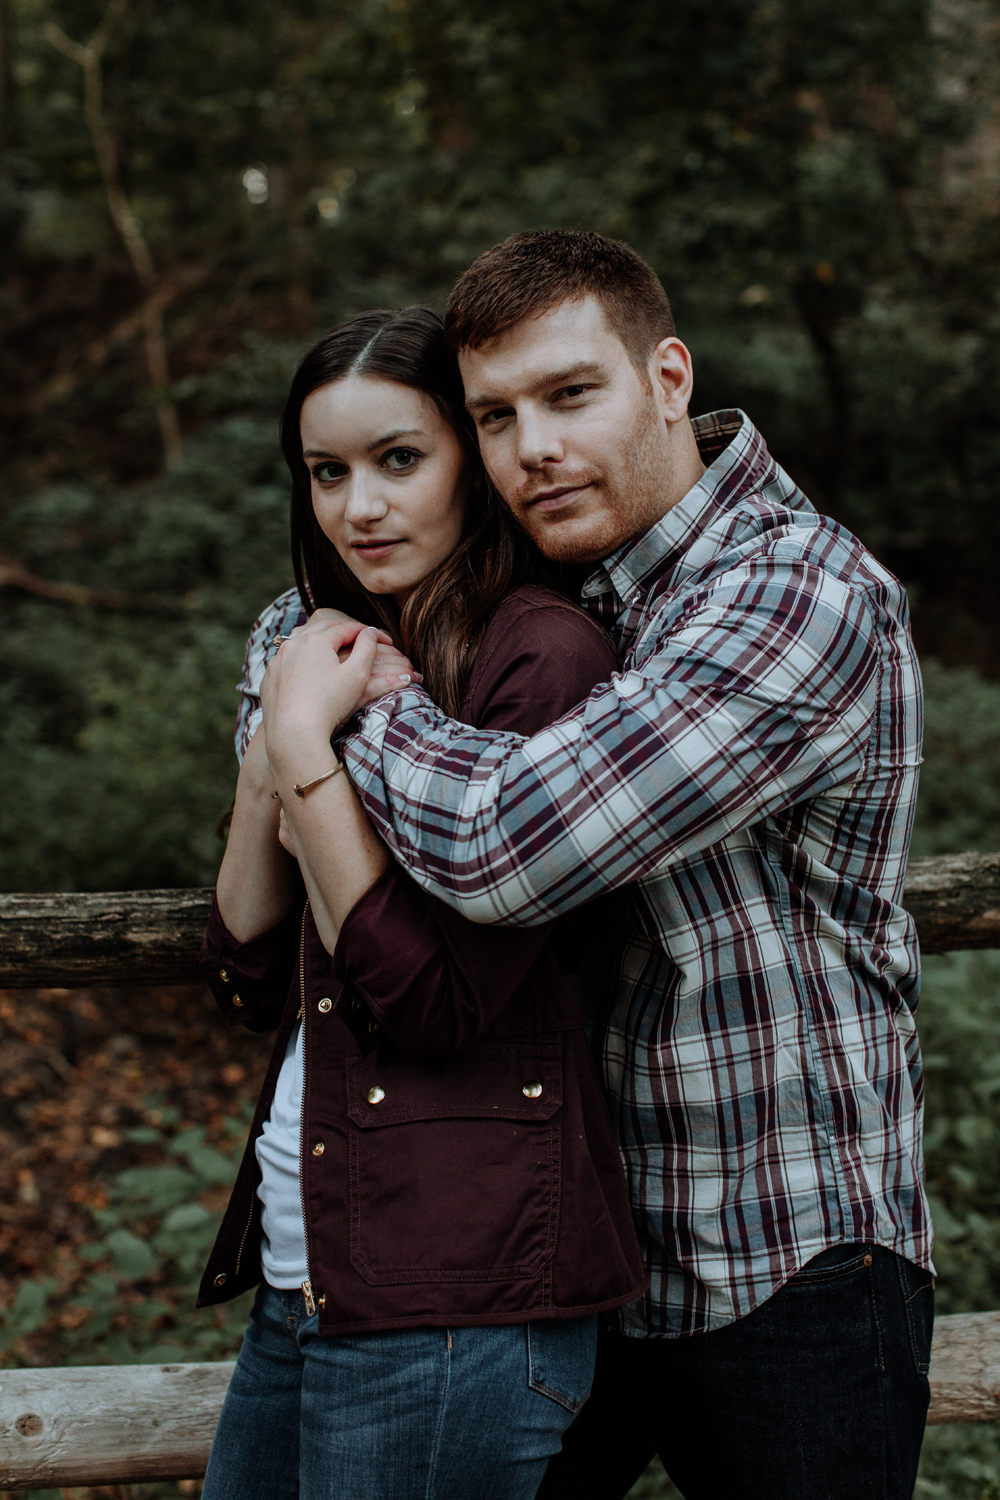 forbidden-drive-philly-photography-couple-23